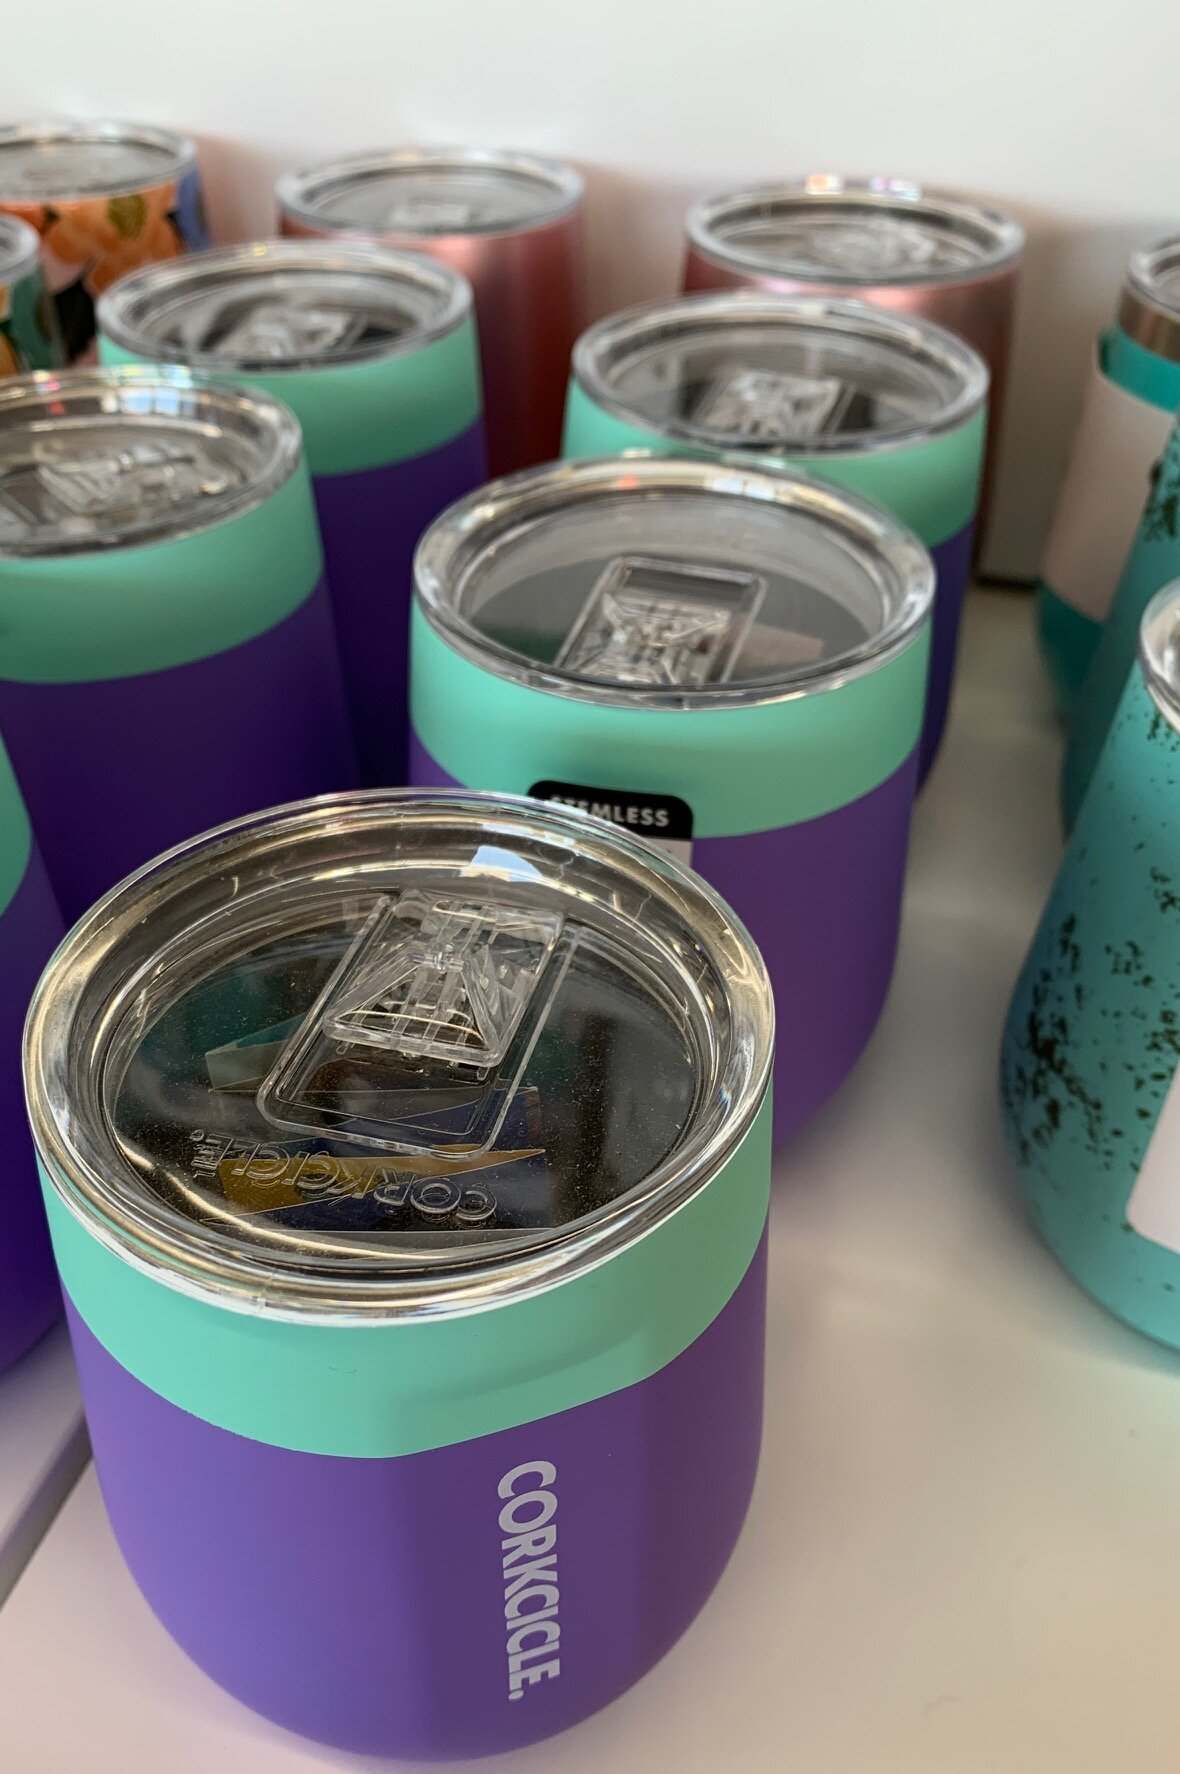 Tumblers /& Water Glasses Gift For Mom, Gift For Cat Lovers The Crazy Cat Lady Everyone Warned About 20 Oz Teal Drink Tumbler W Lid